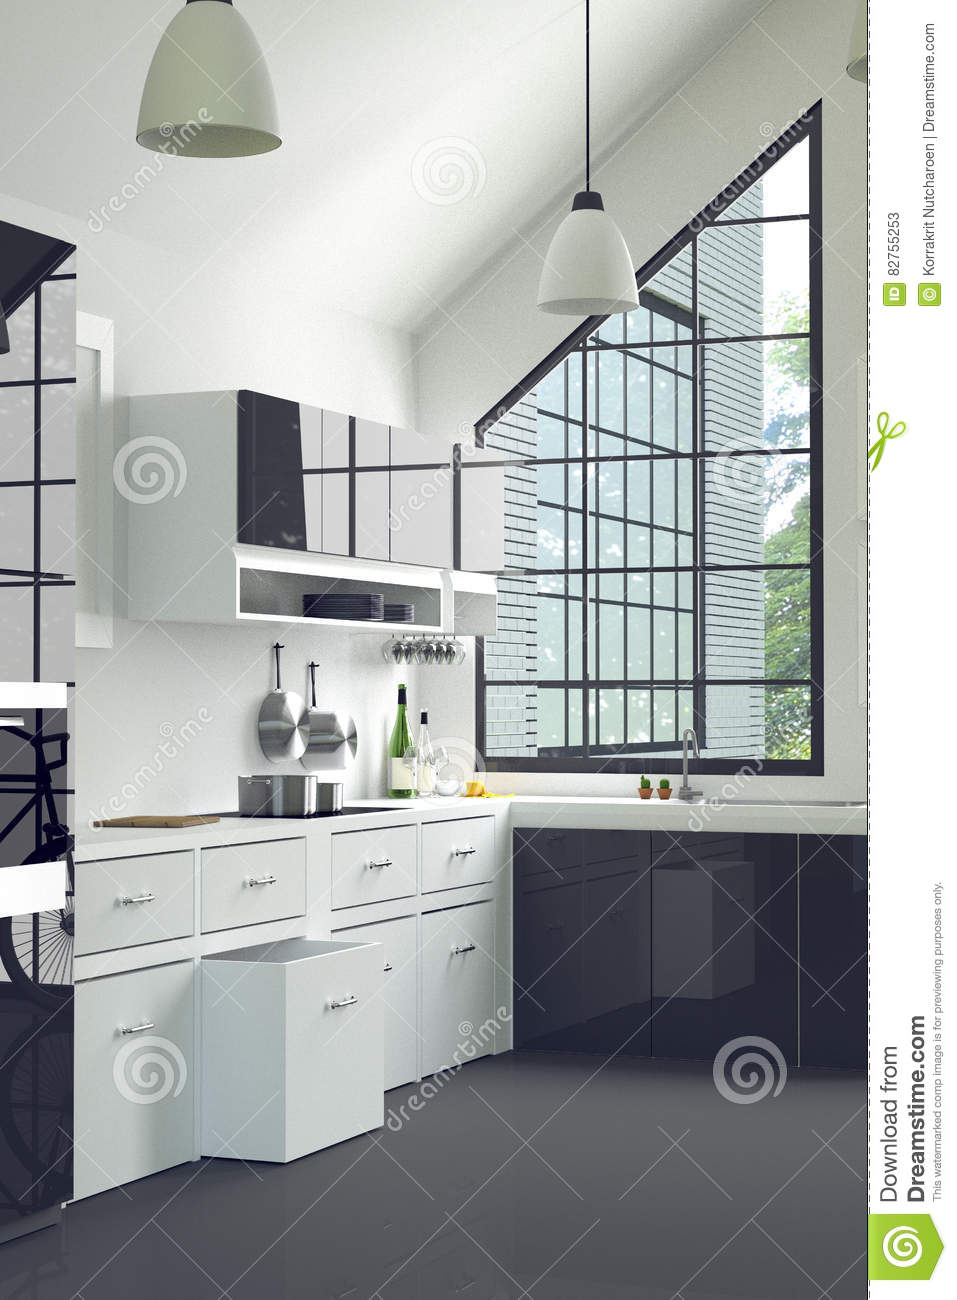 3D Rendering : illustration of modern interior kitchen room.kitchen part of house.black and white shelf.Mock up.shiny floor.